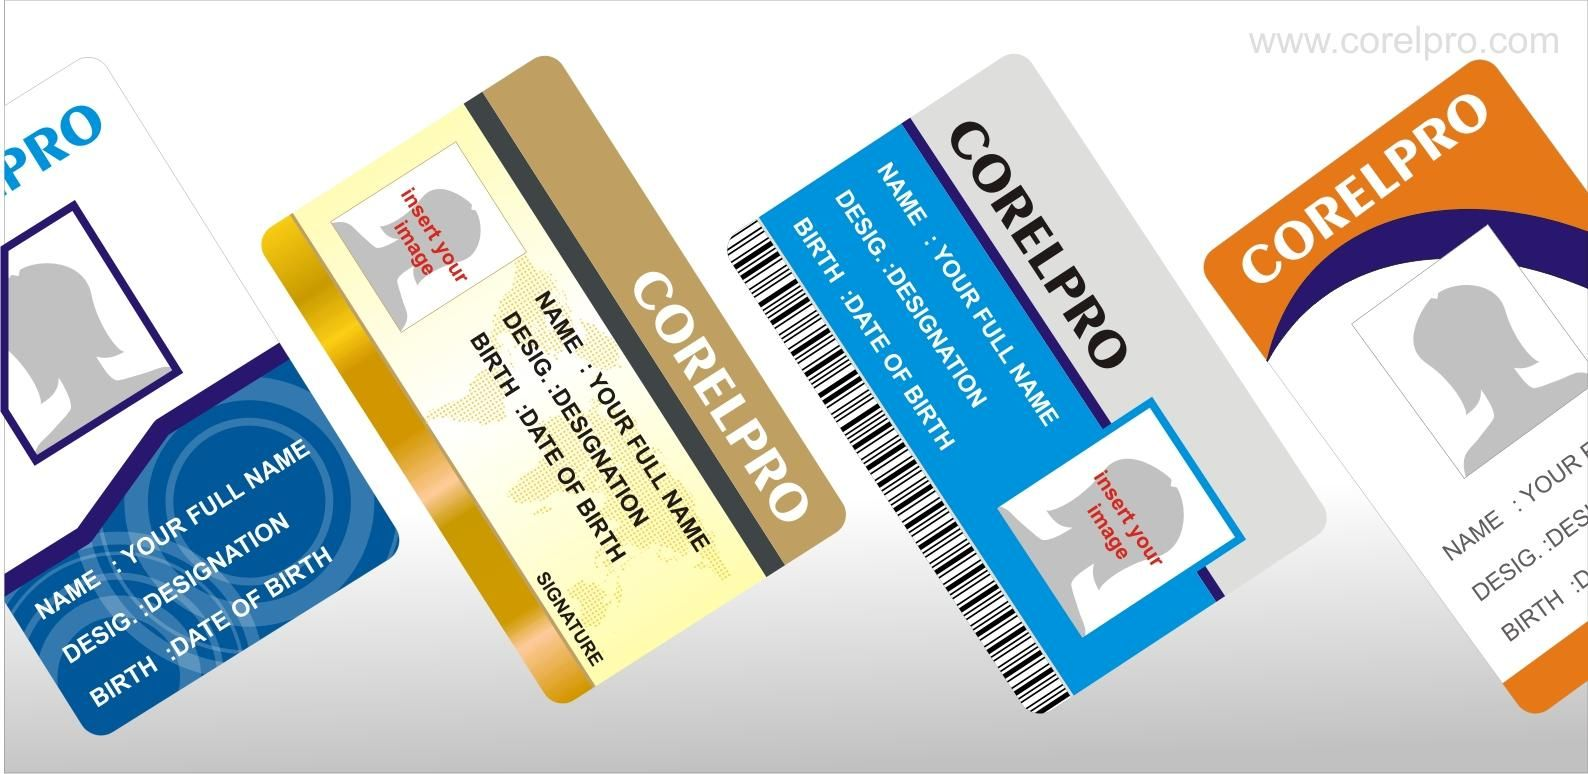 Corel Draw Tutorials And Free Corel Draw Open Files From Corelpro Com Id Card Template Business Card Design Inspiration Card Template